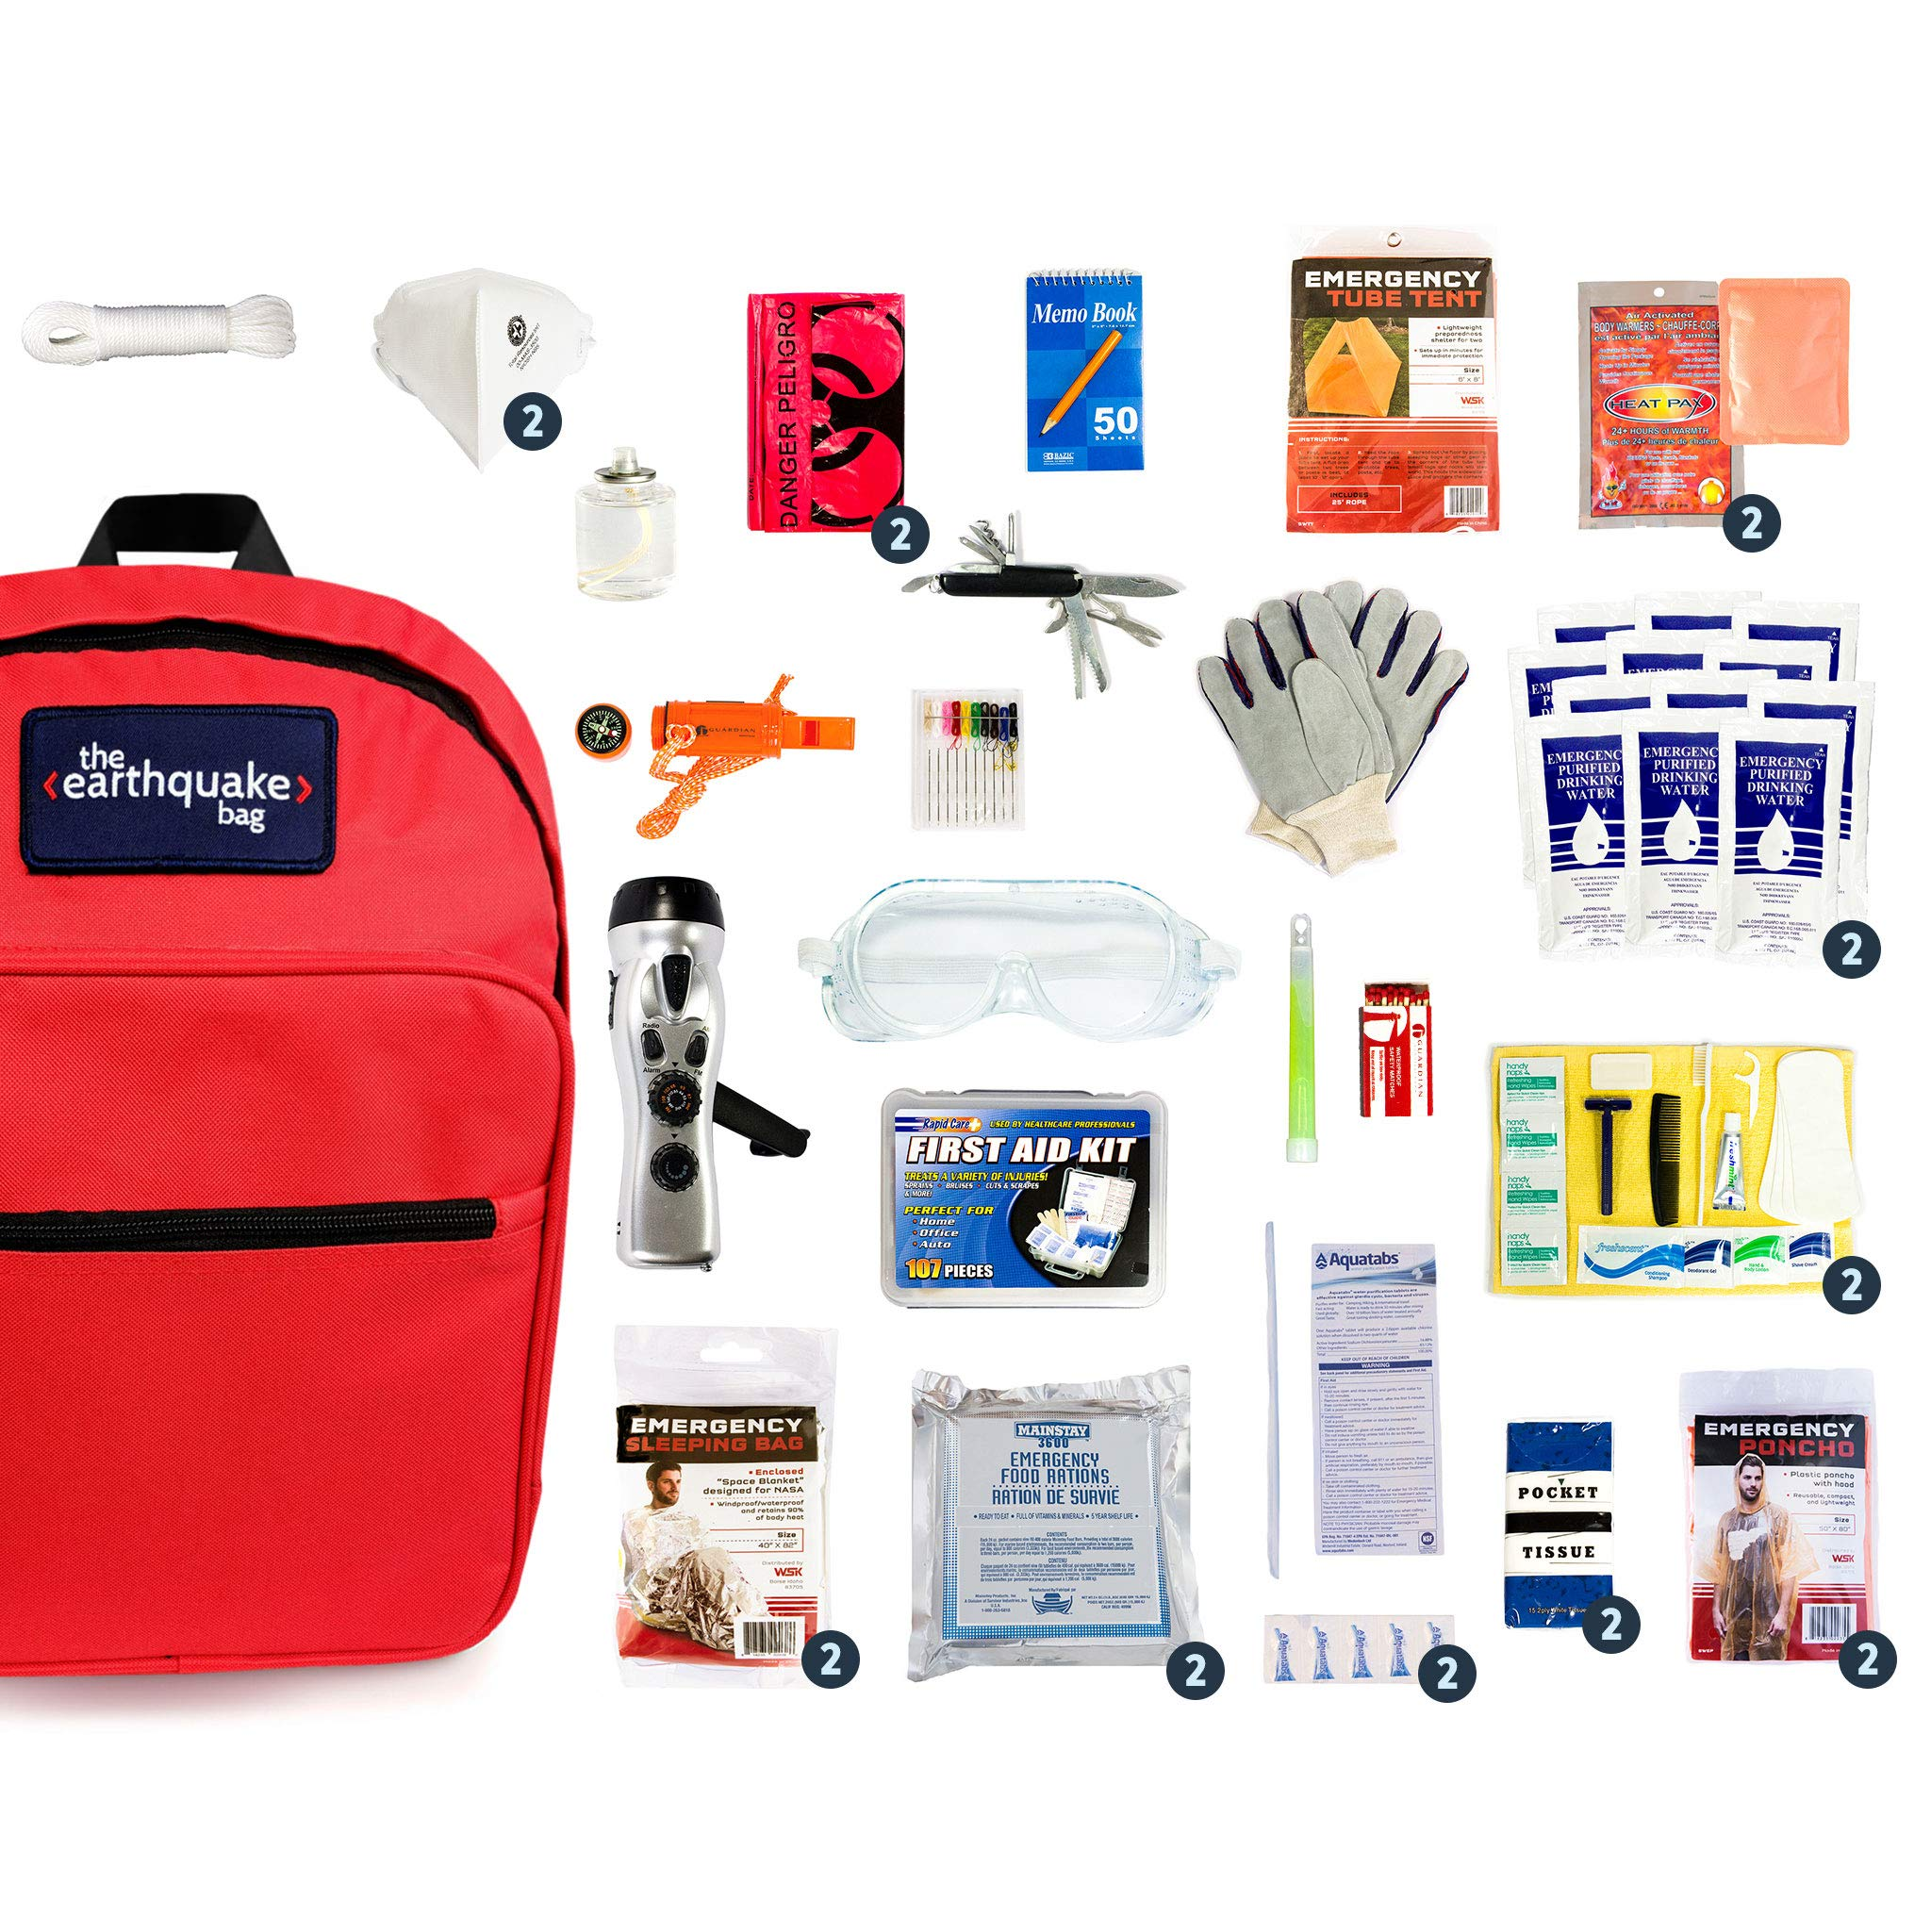 Complete Earthquake Bag - Emergency kit for earthquakes, hurricanes, floods + other disasters (2 person, 3 days) by Redfora